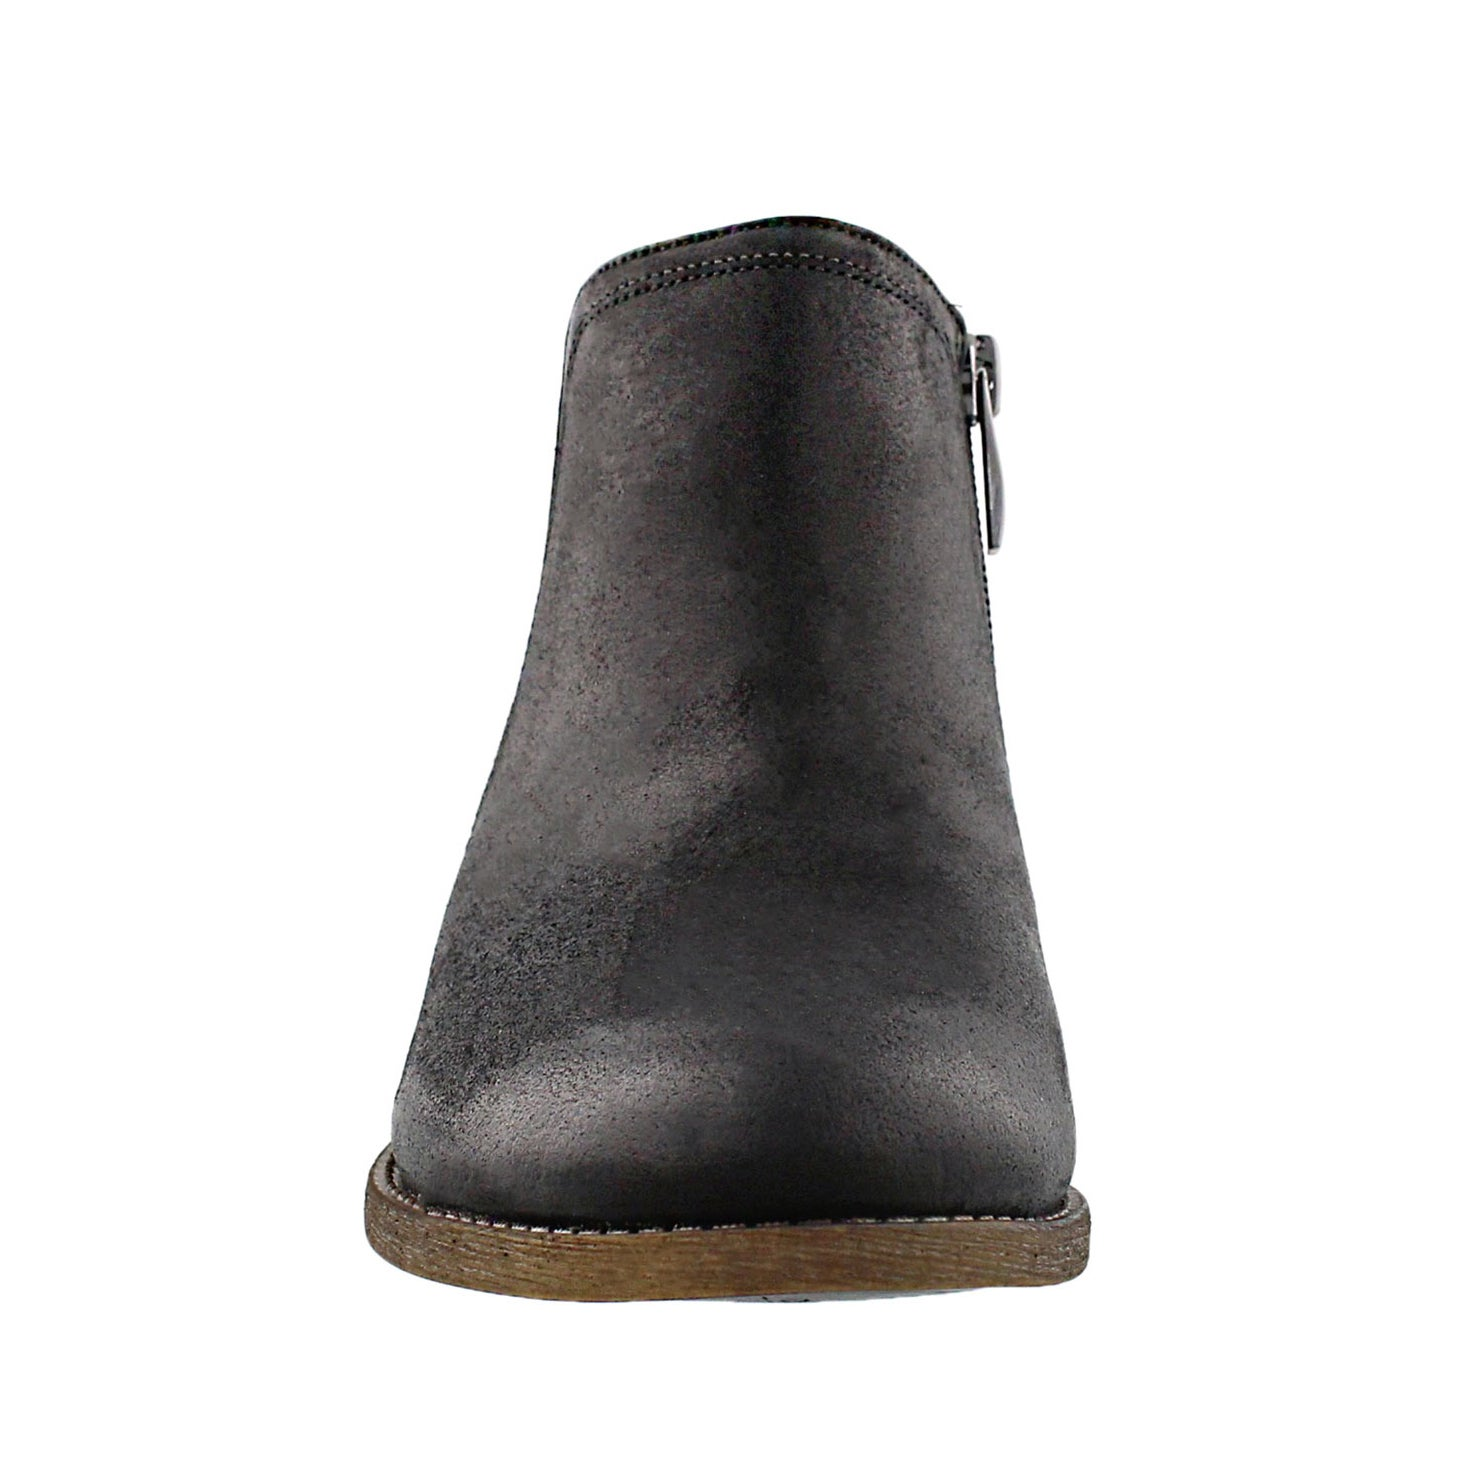 Lds Hancock black slip on ankle boot